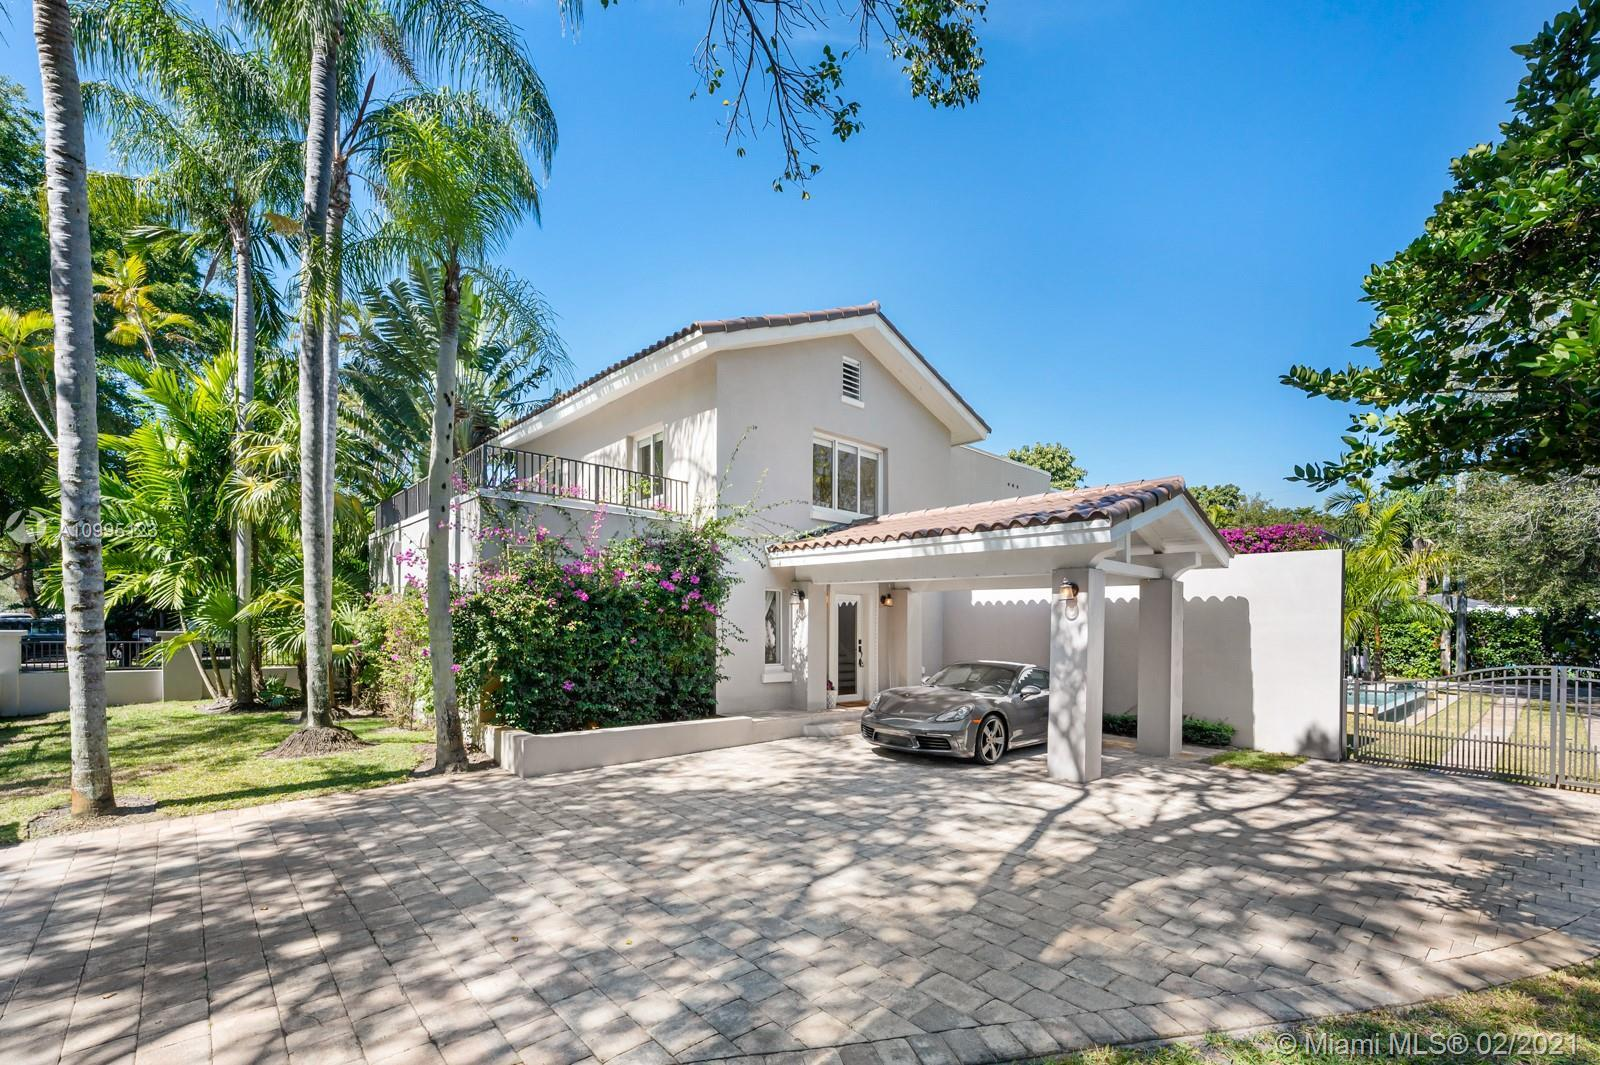 Elegant renovation recently completed! Home sits on a 10,000 sqft lot with a large pool and a guest